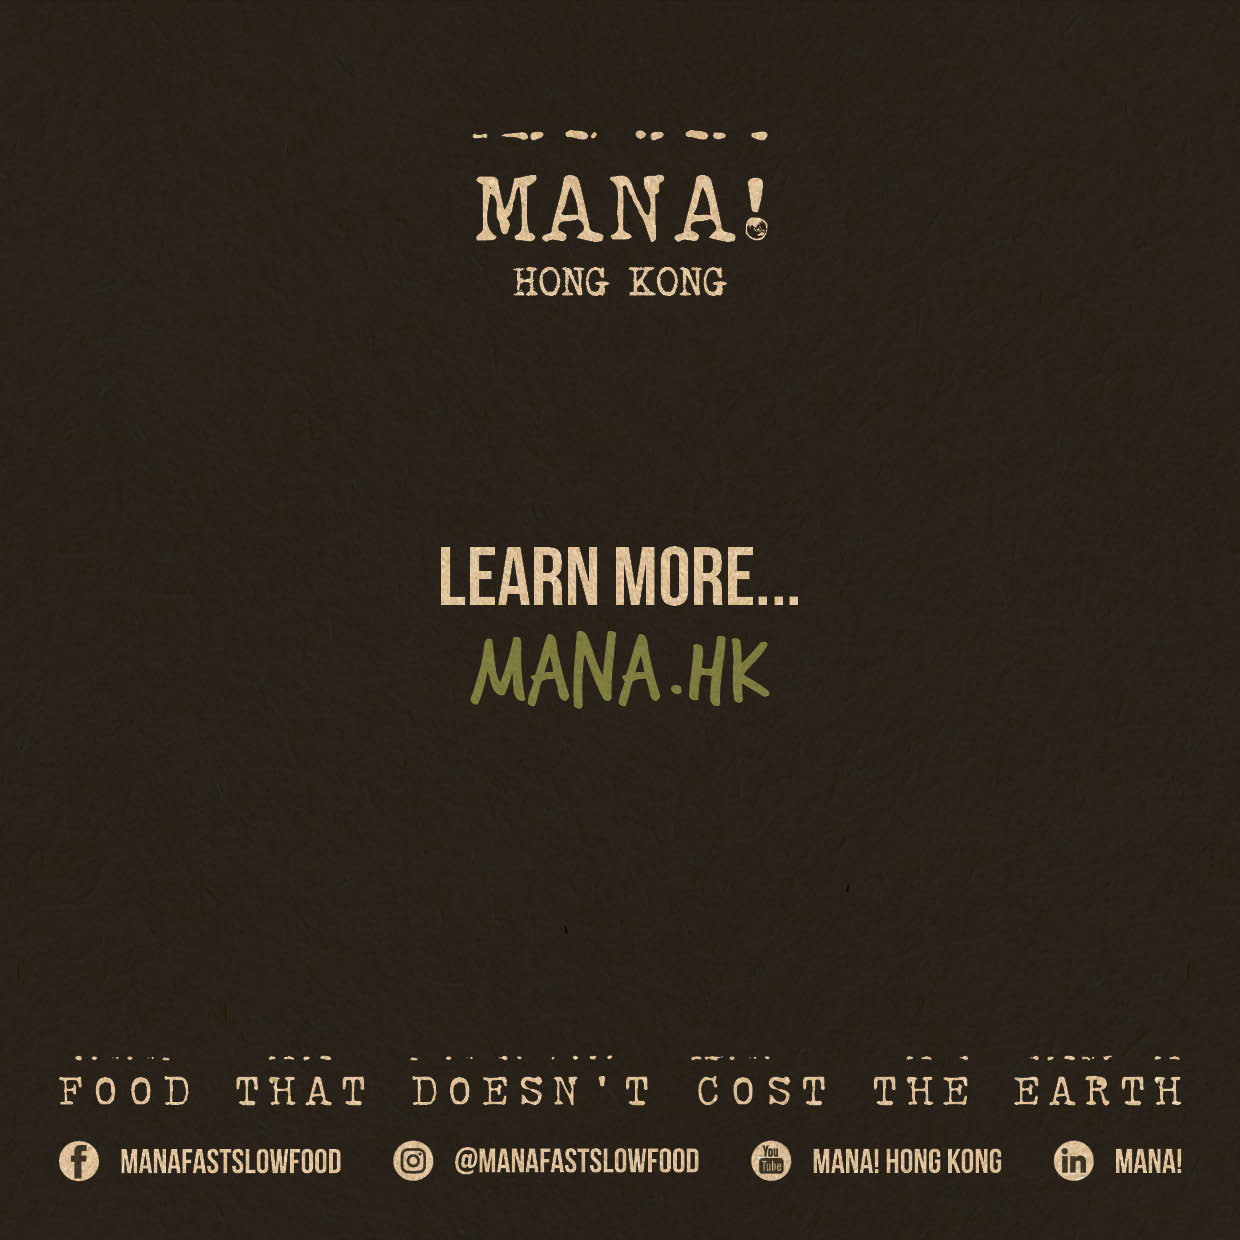 MANA! Sustainability Report 01B - 2019.078.jpg